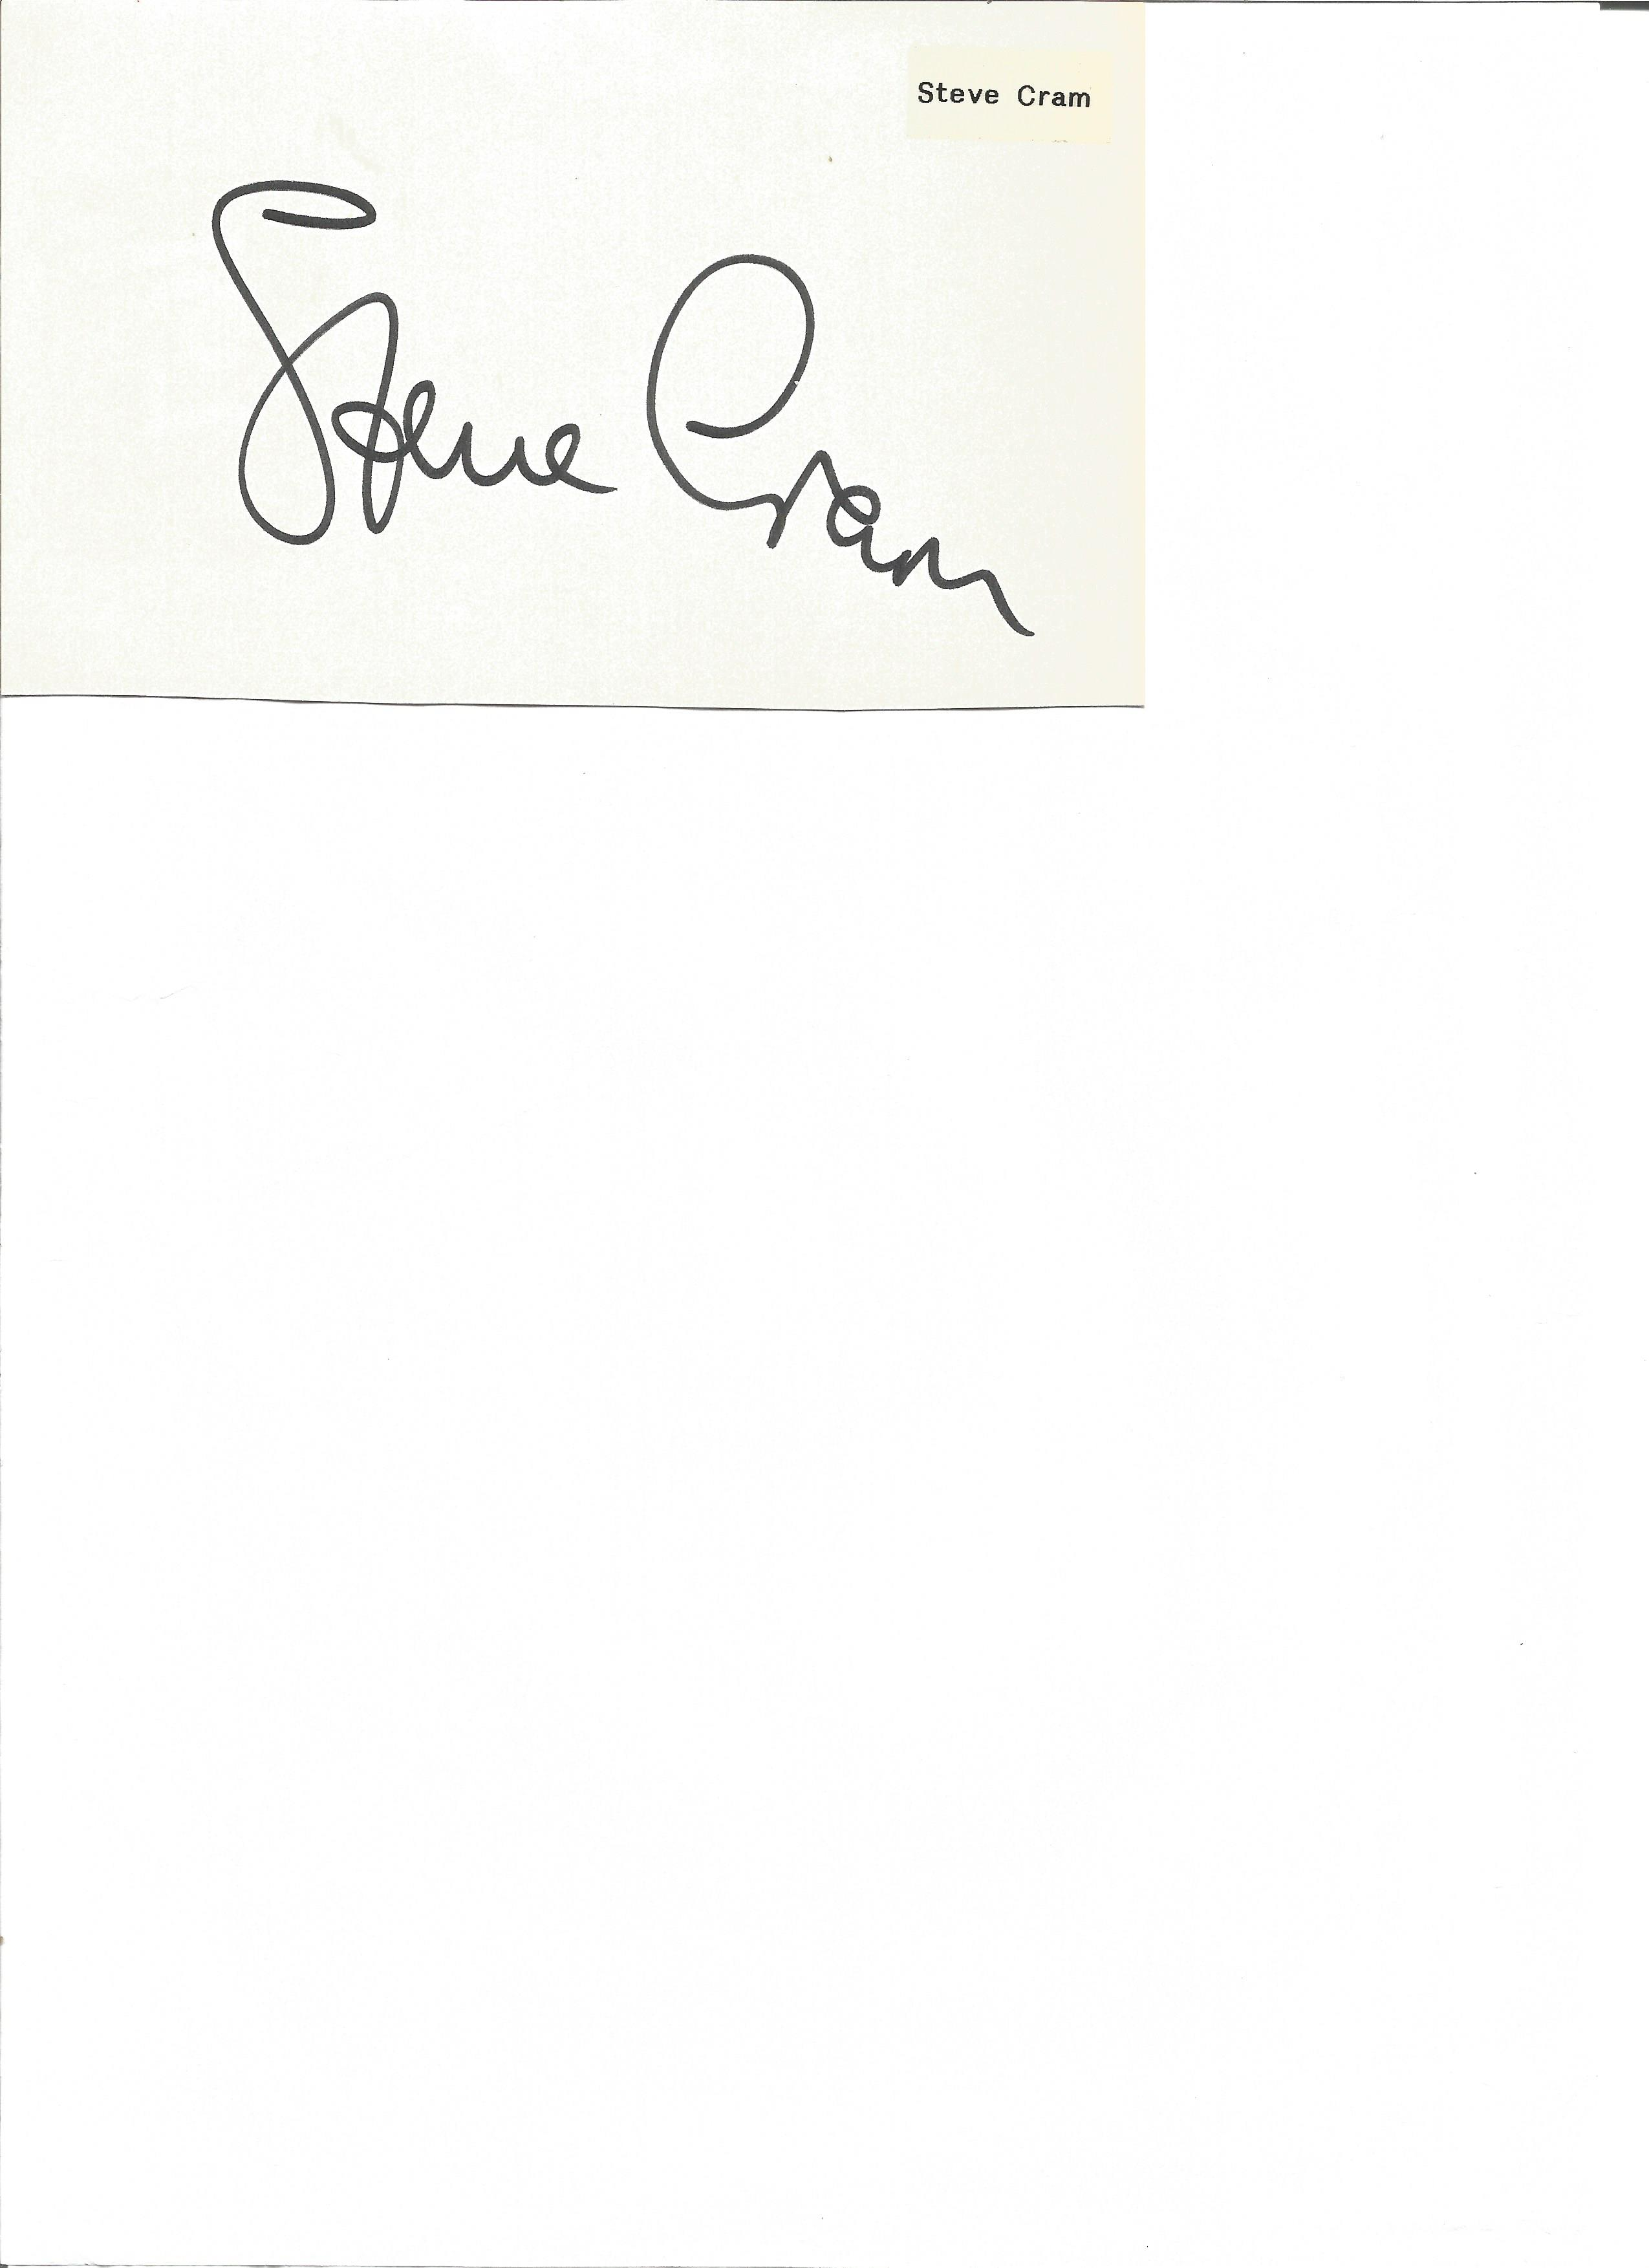 Lot 167 - Athletics Steve Cram signed 6 x 4 inch white card. Stephen Cram CBE born 14 October 1960 is a